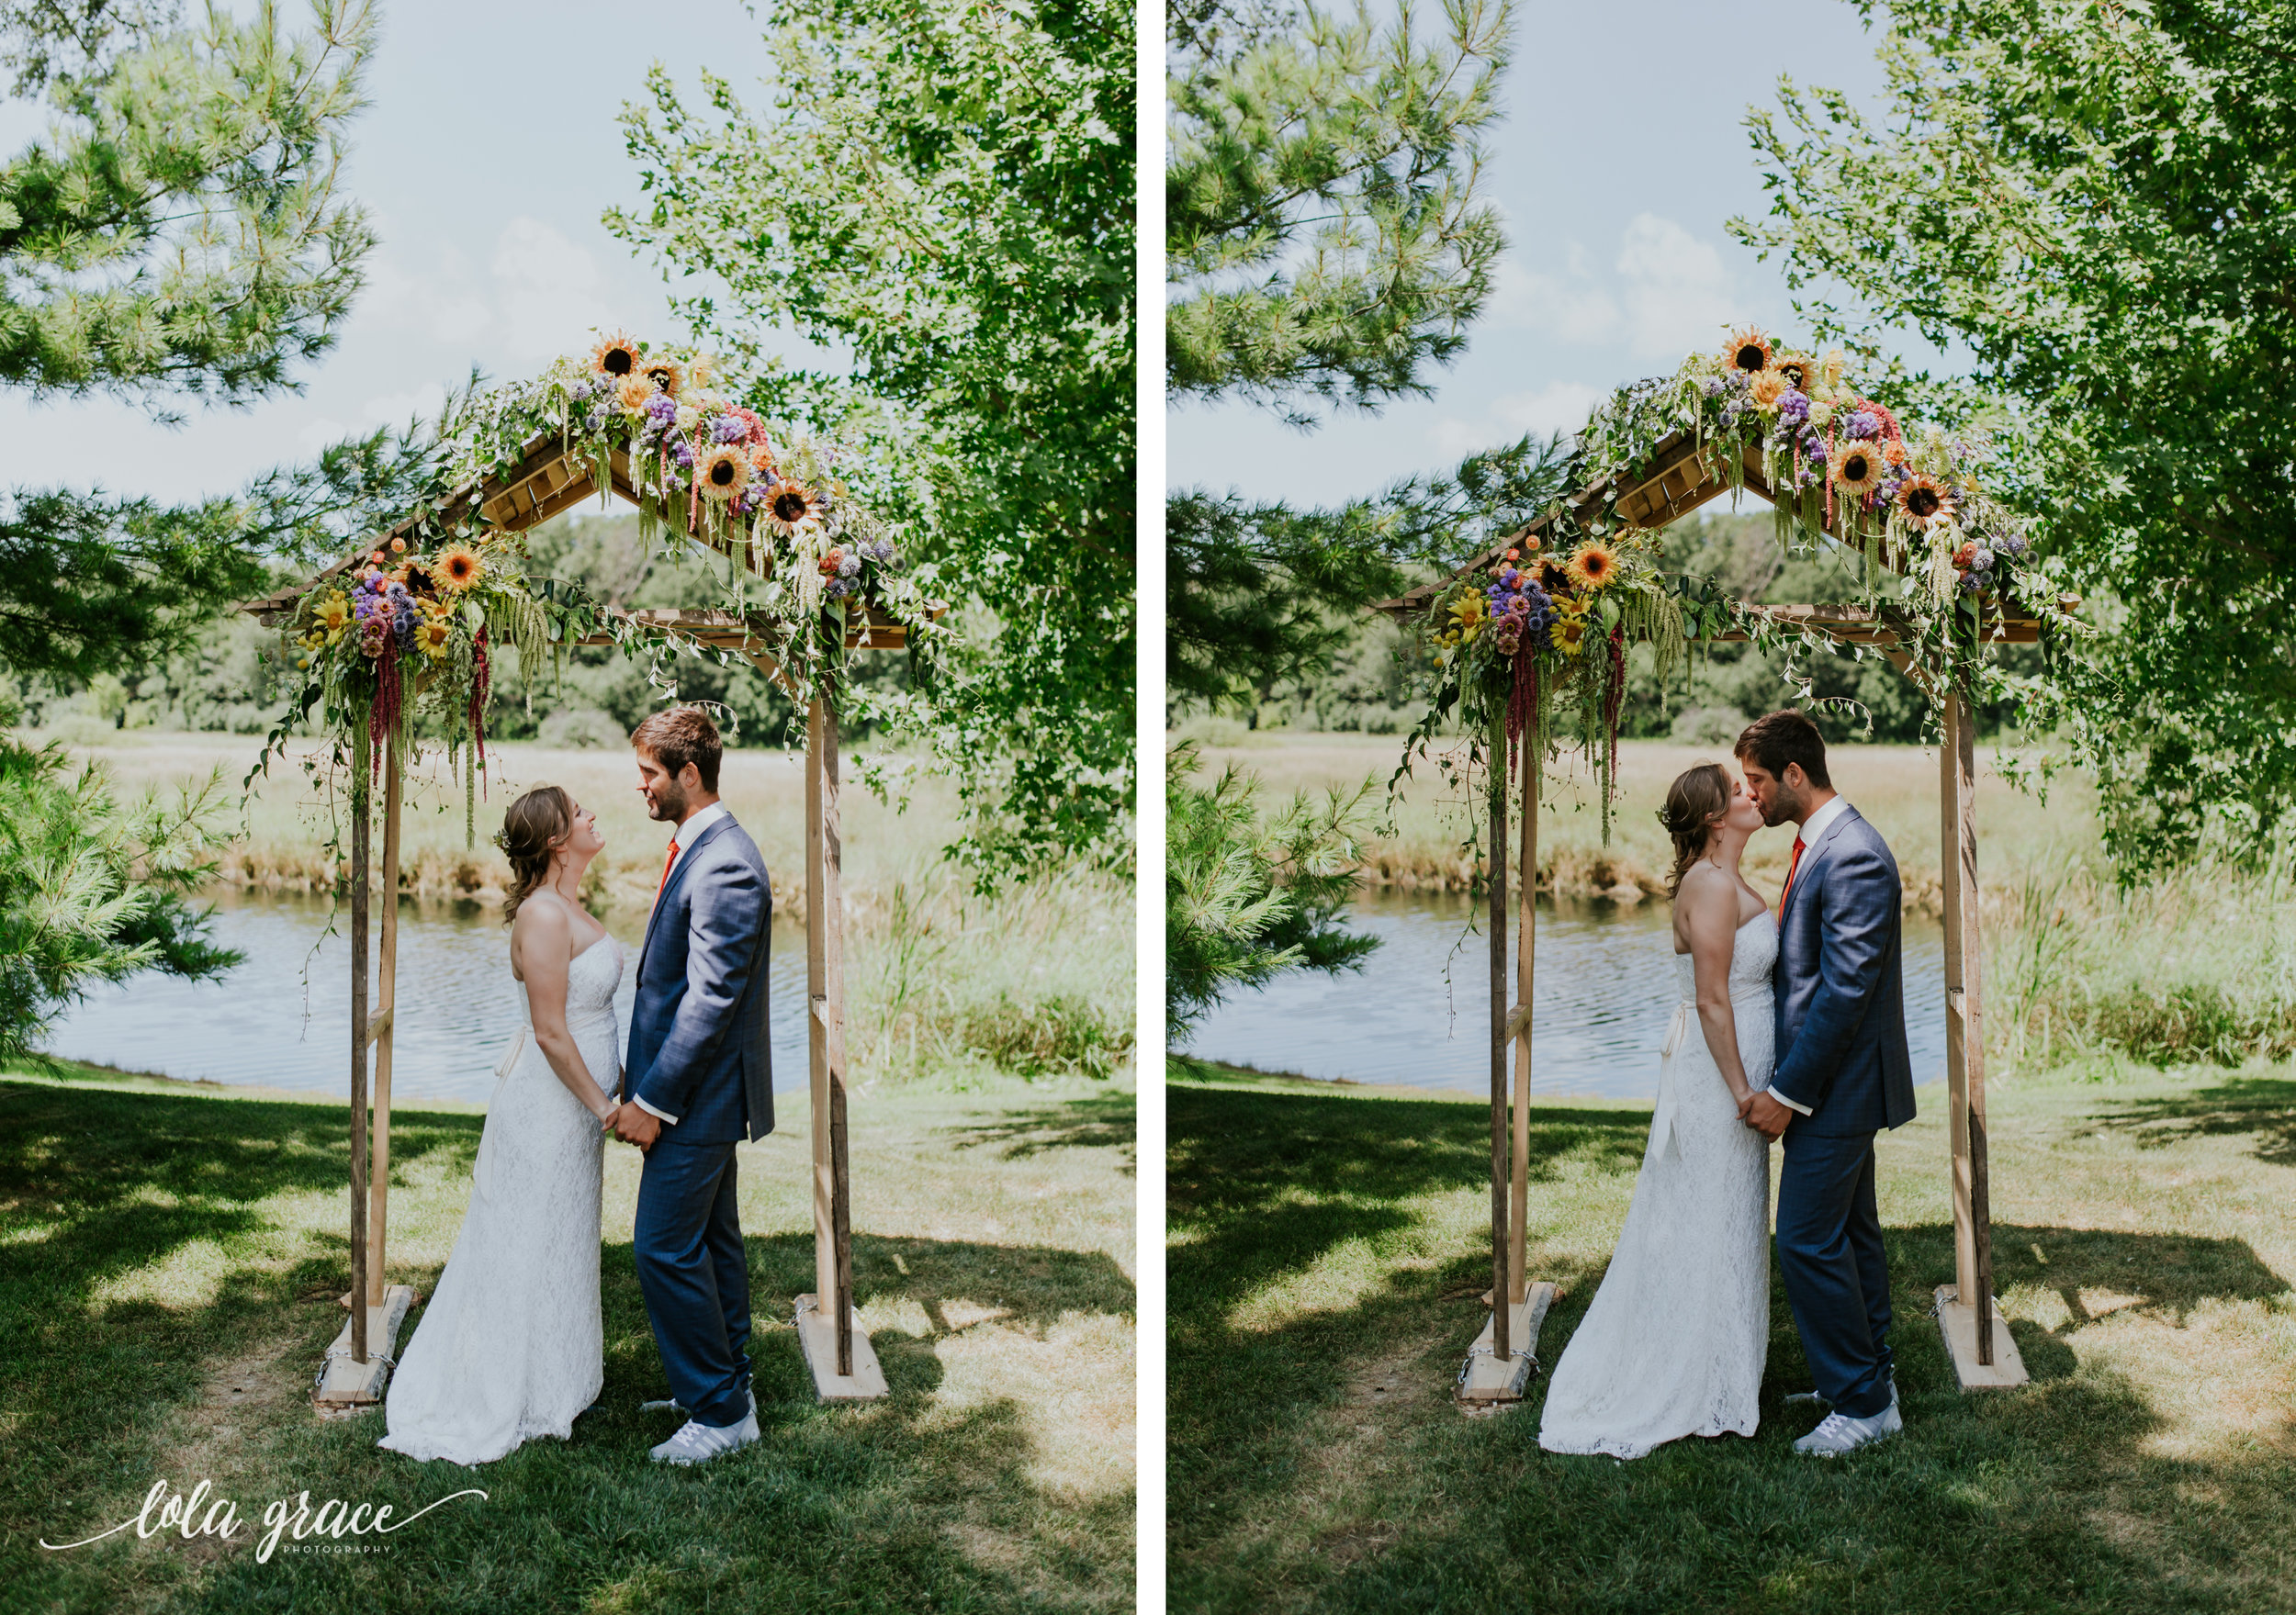 summer-wedding-at-misty-farms-ann-arbor-19.jpg